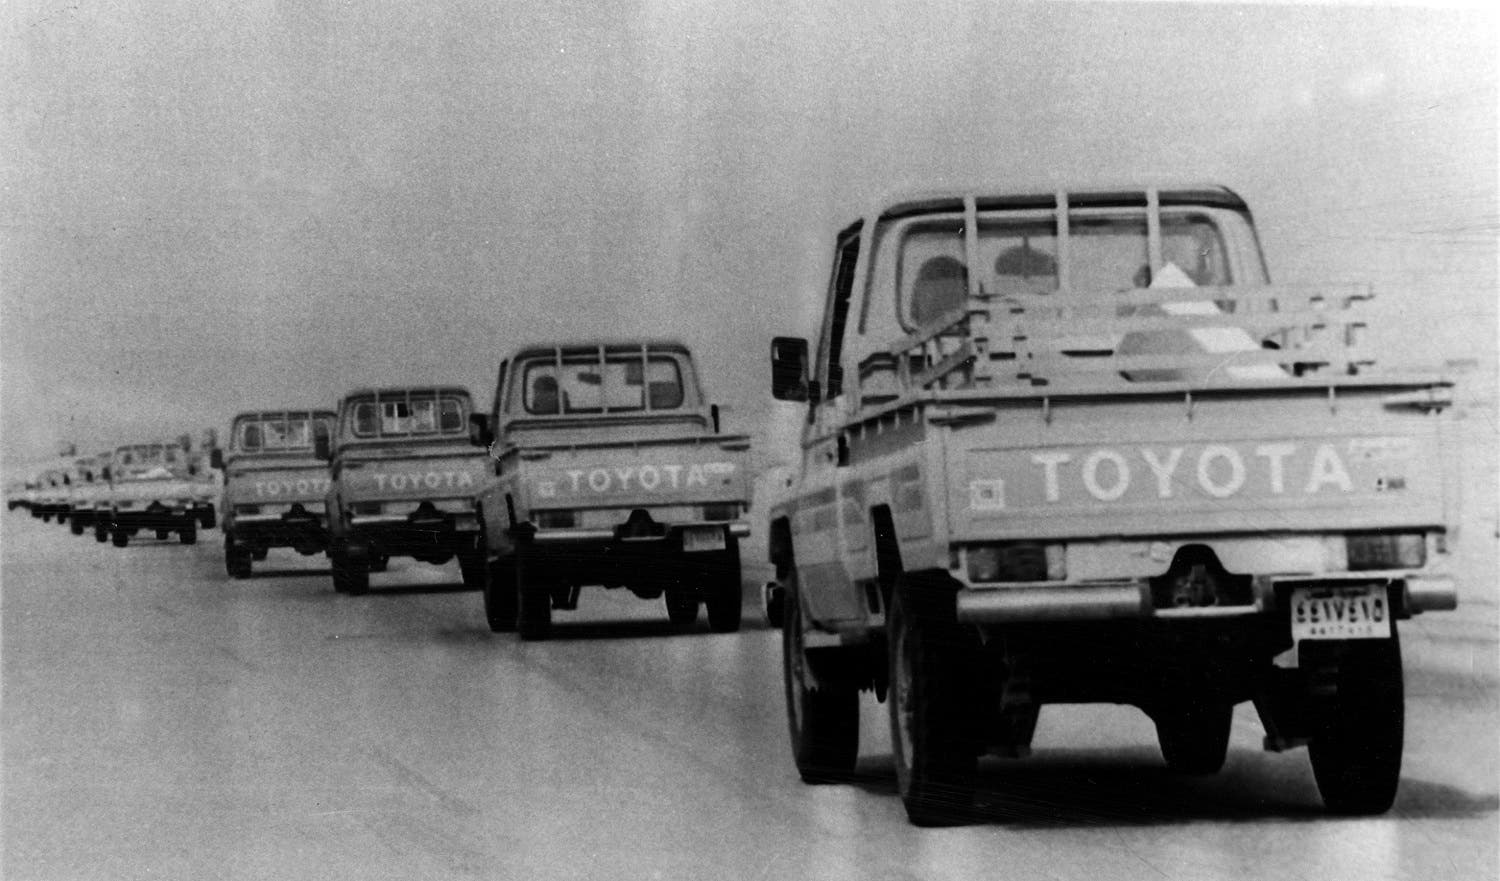 Abdul Latif Jameel began importing Toyota in 1955. (File photo: AP)